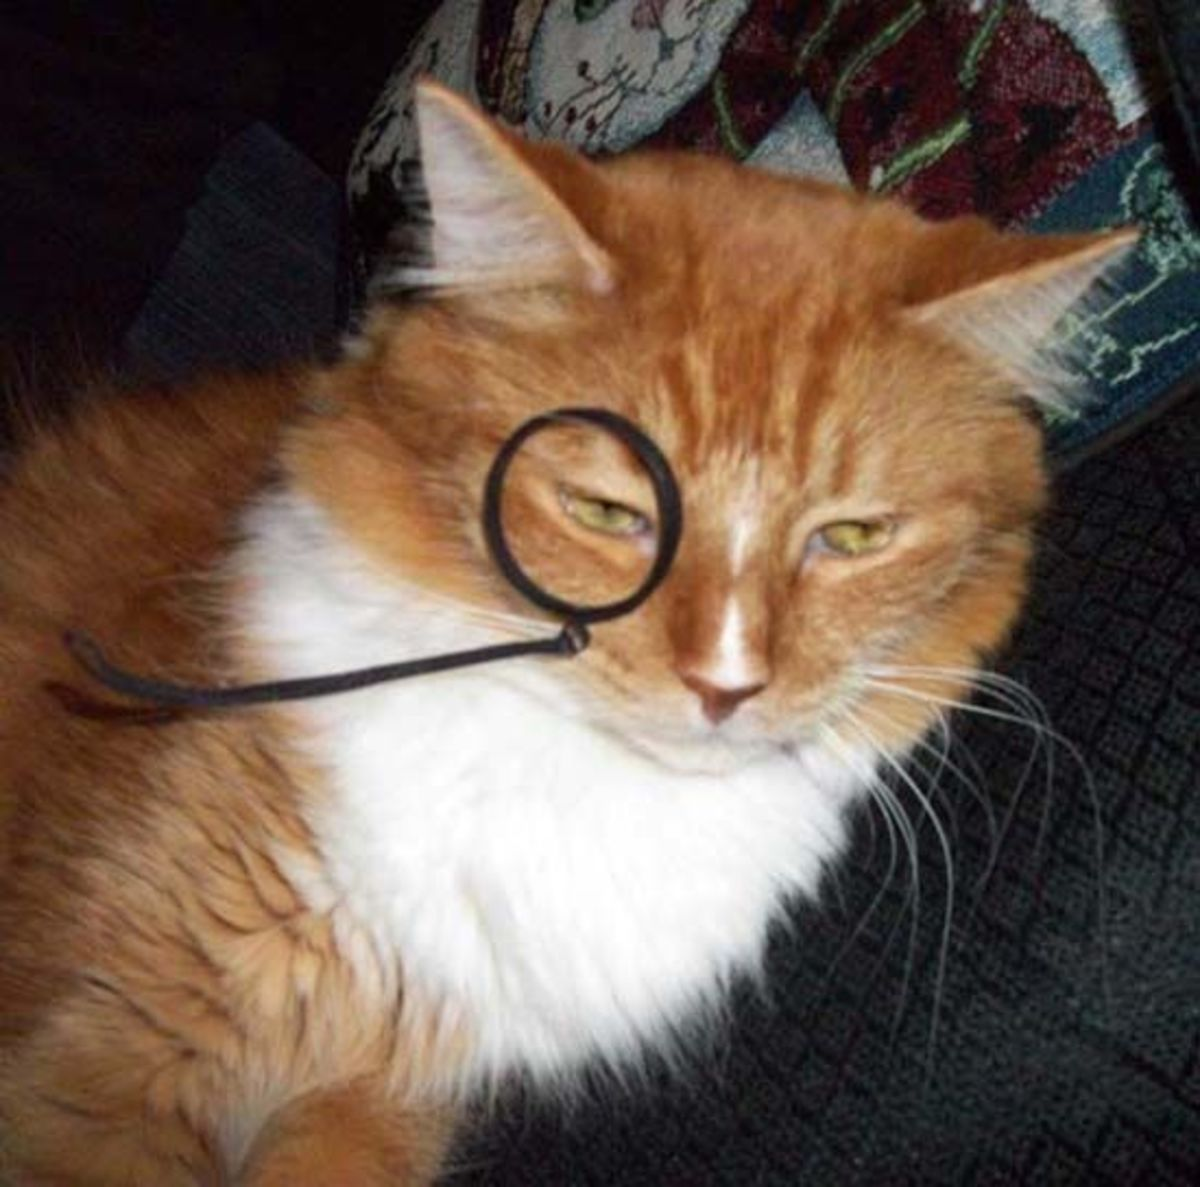 Bored and slightly annoyed marmalade kitty in costume monocle